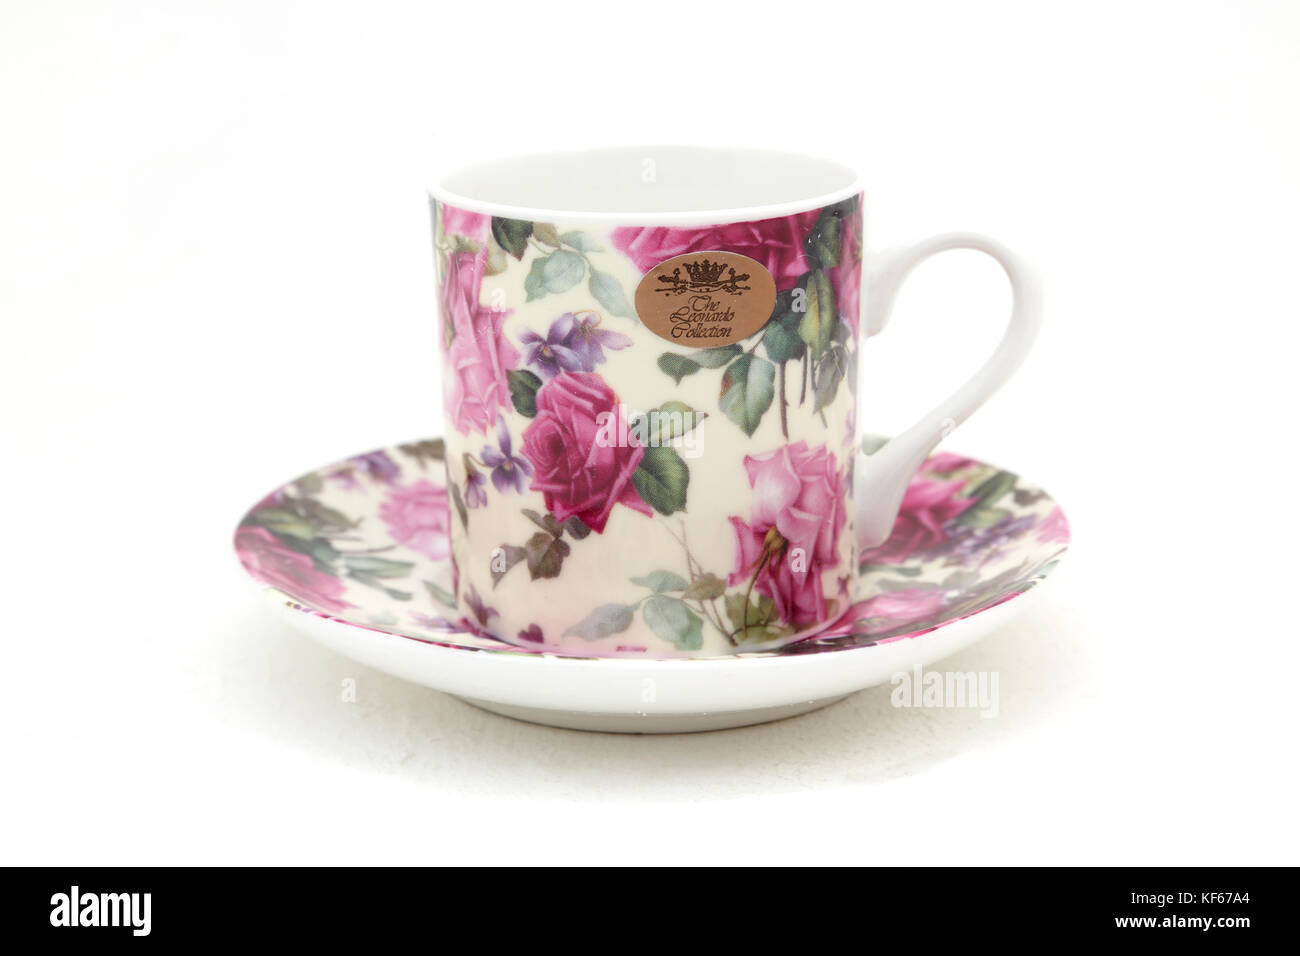 Leonardo Collection China Cup and Saucer with Floral Design - Stock Image